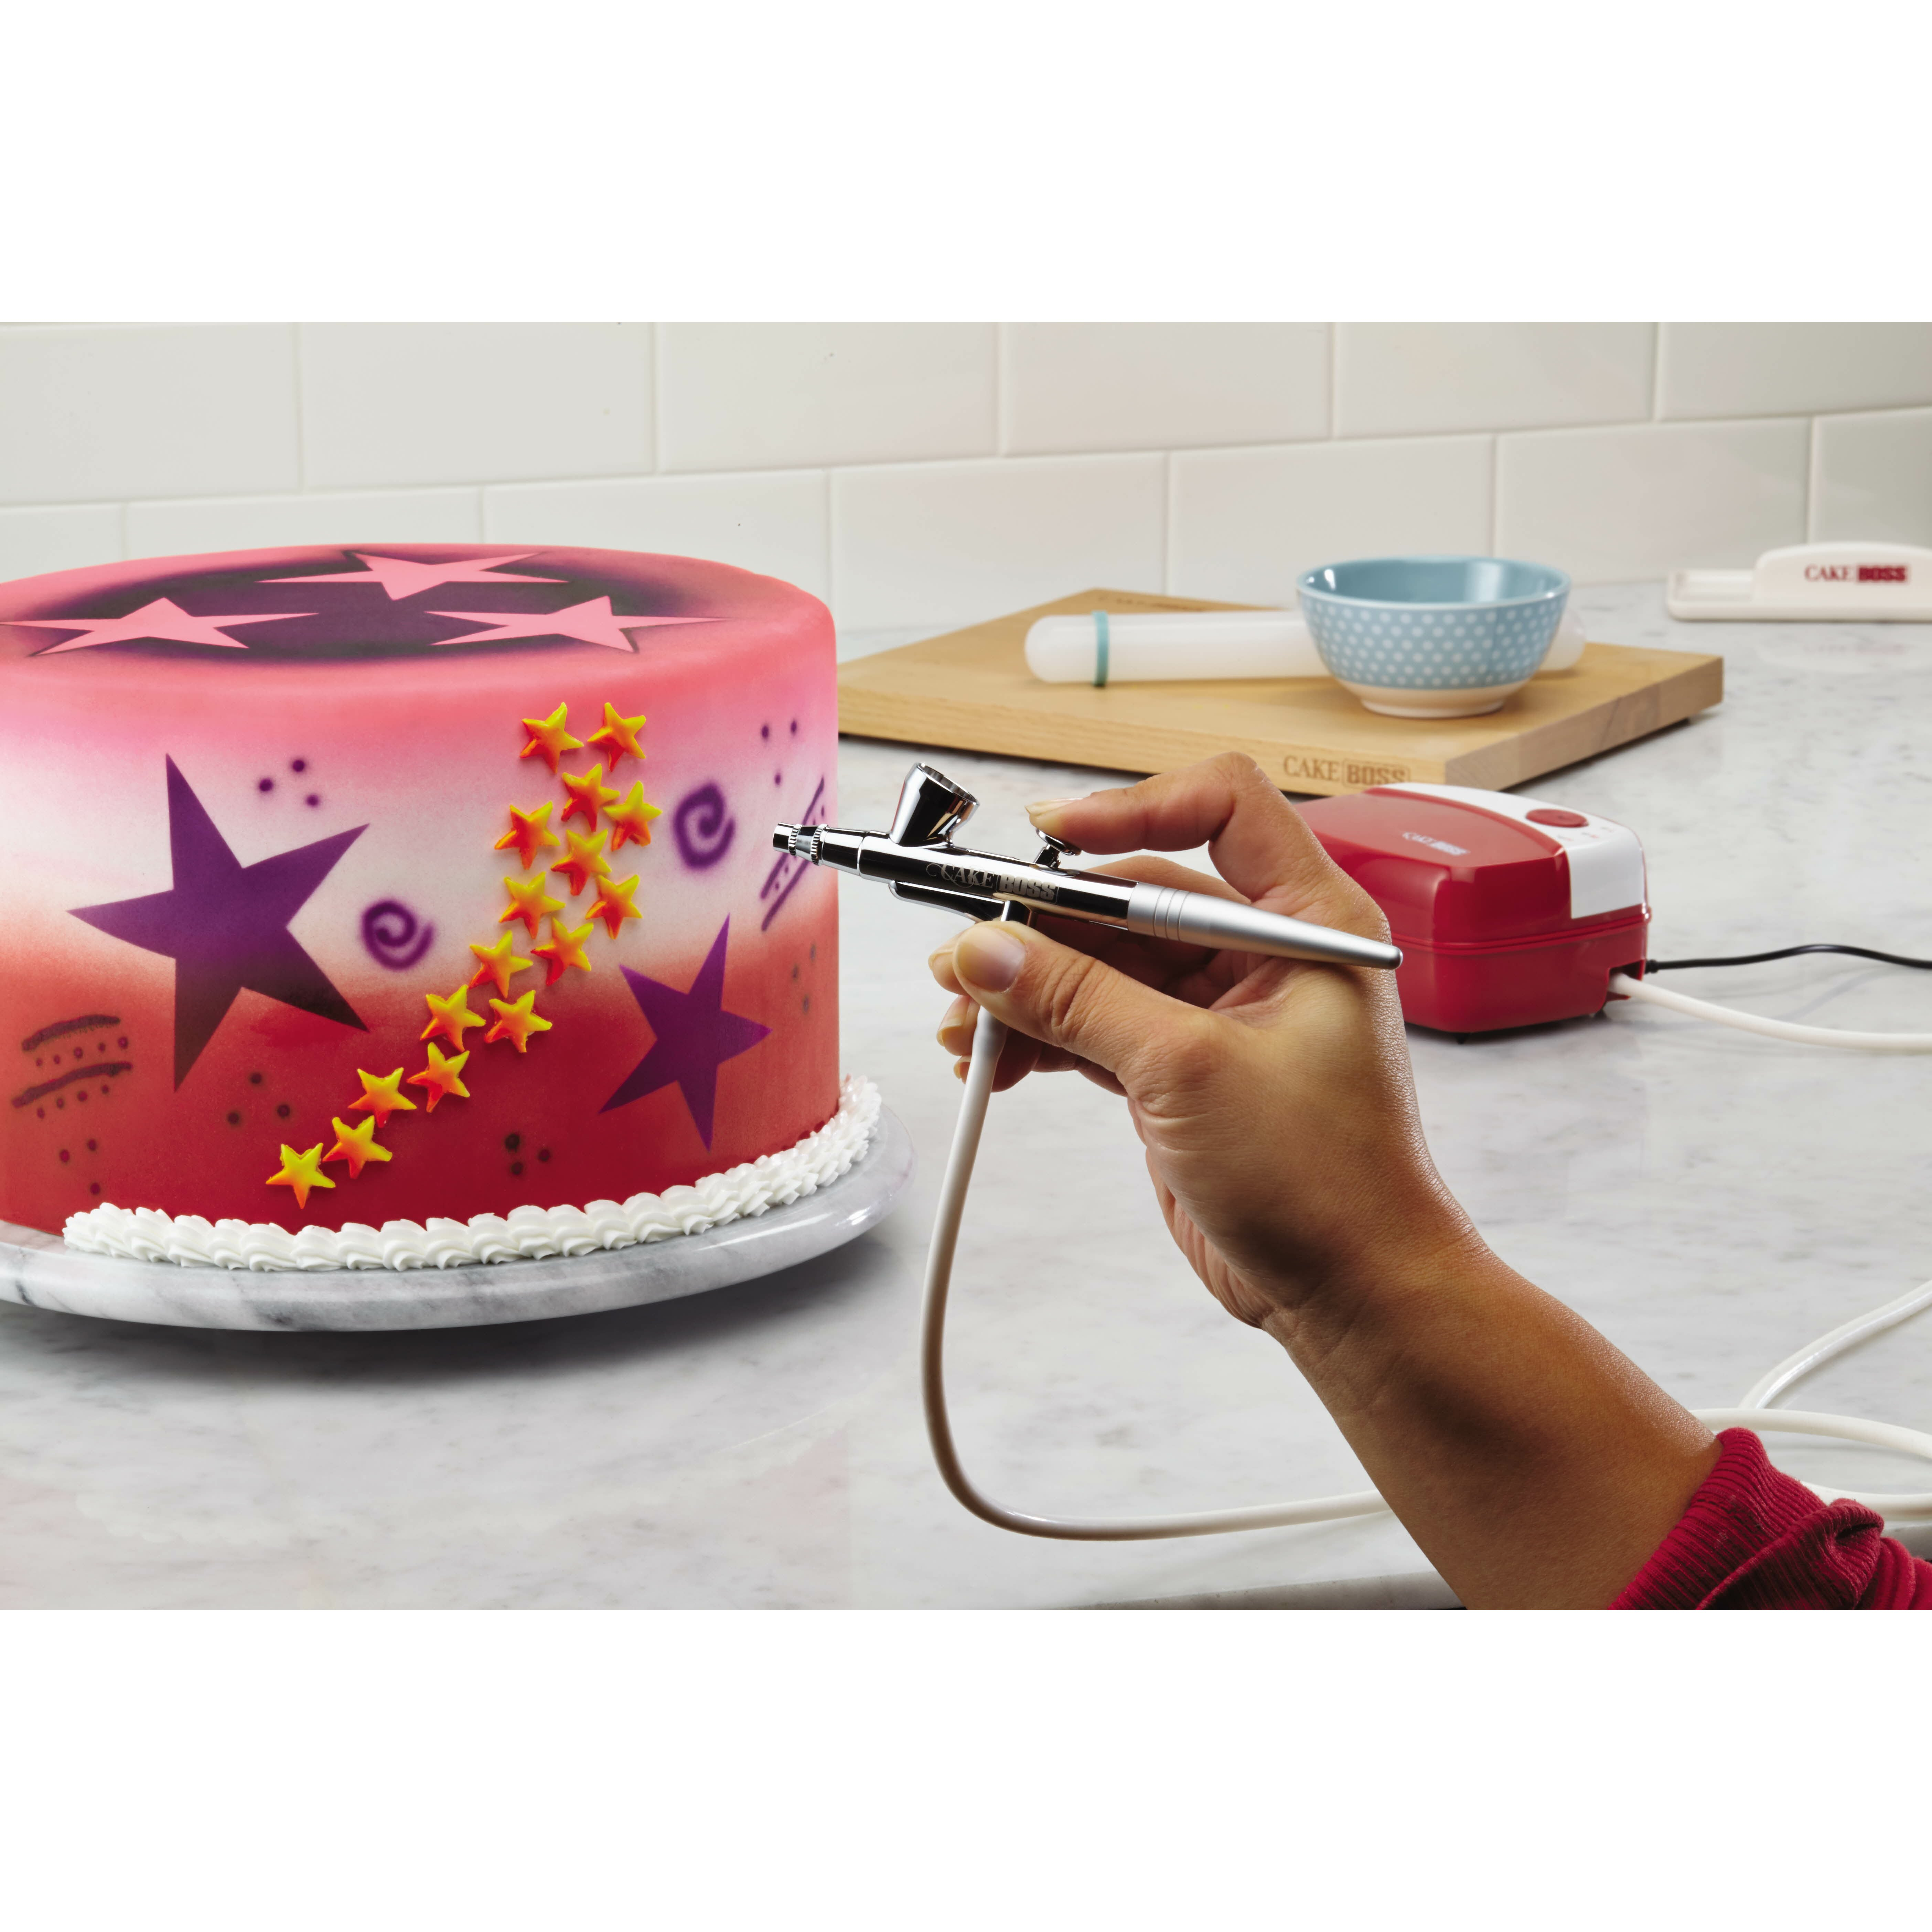 Cake Boss Cake Decorating Airbrush Kit : Cake Boss Airbrushing Kit & Reviews Wayfair